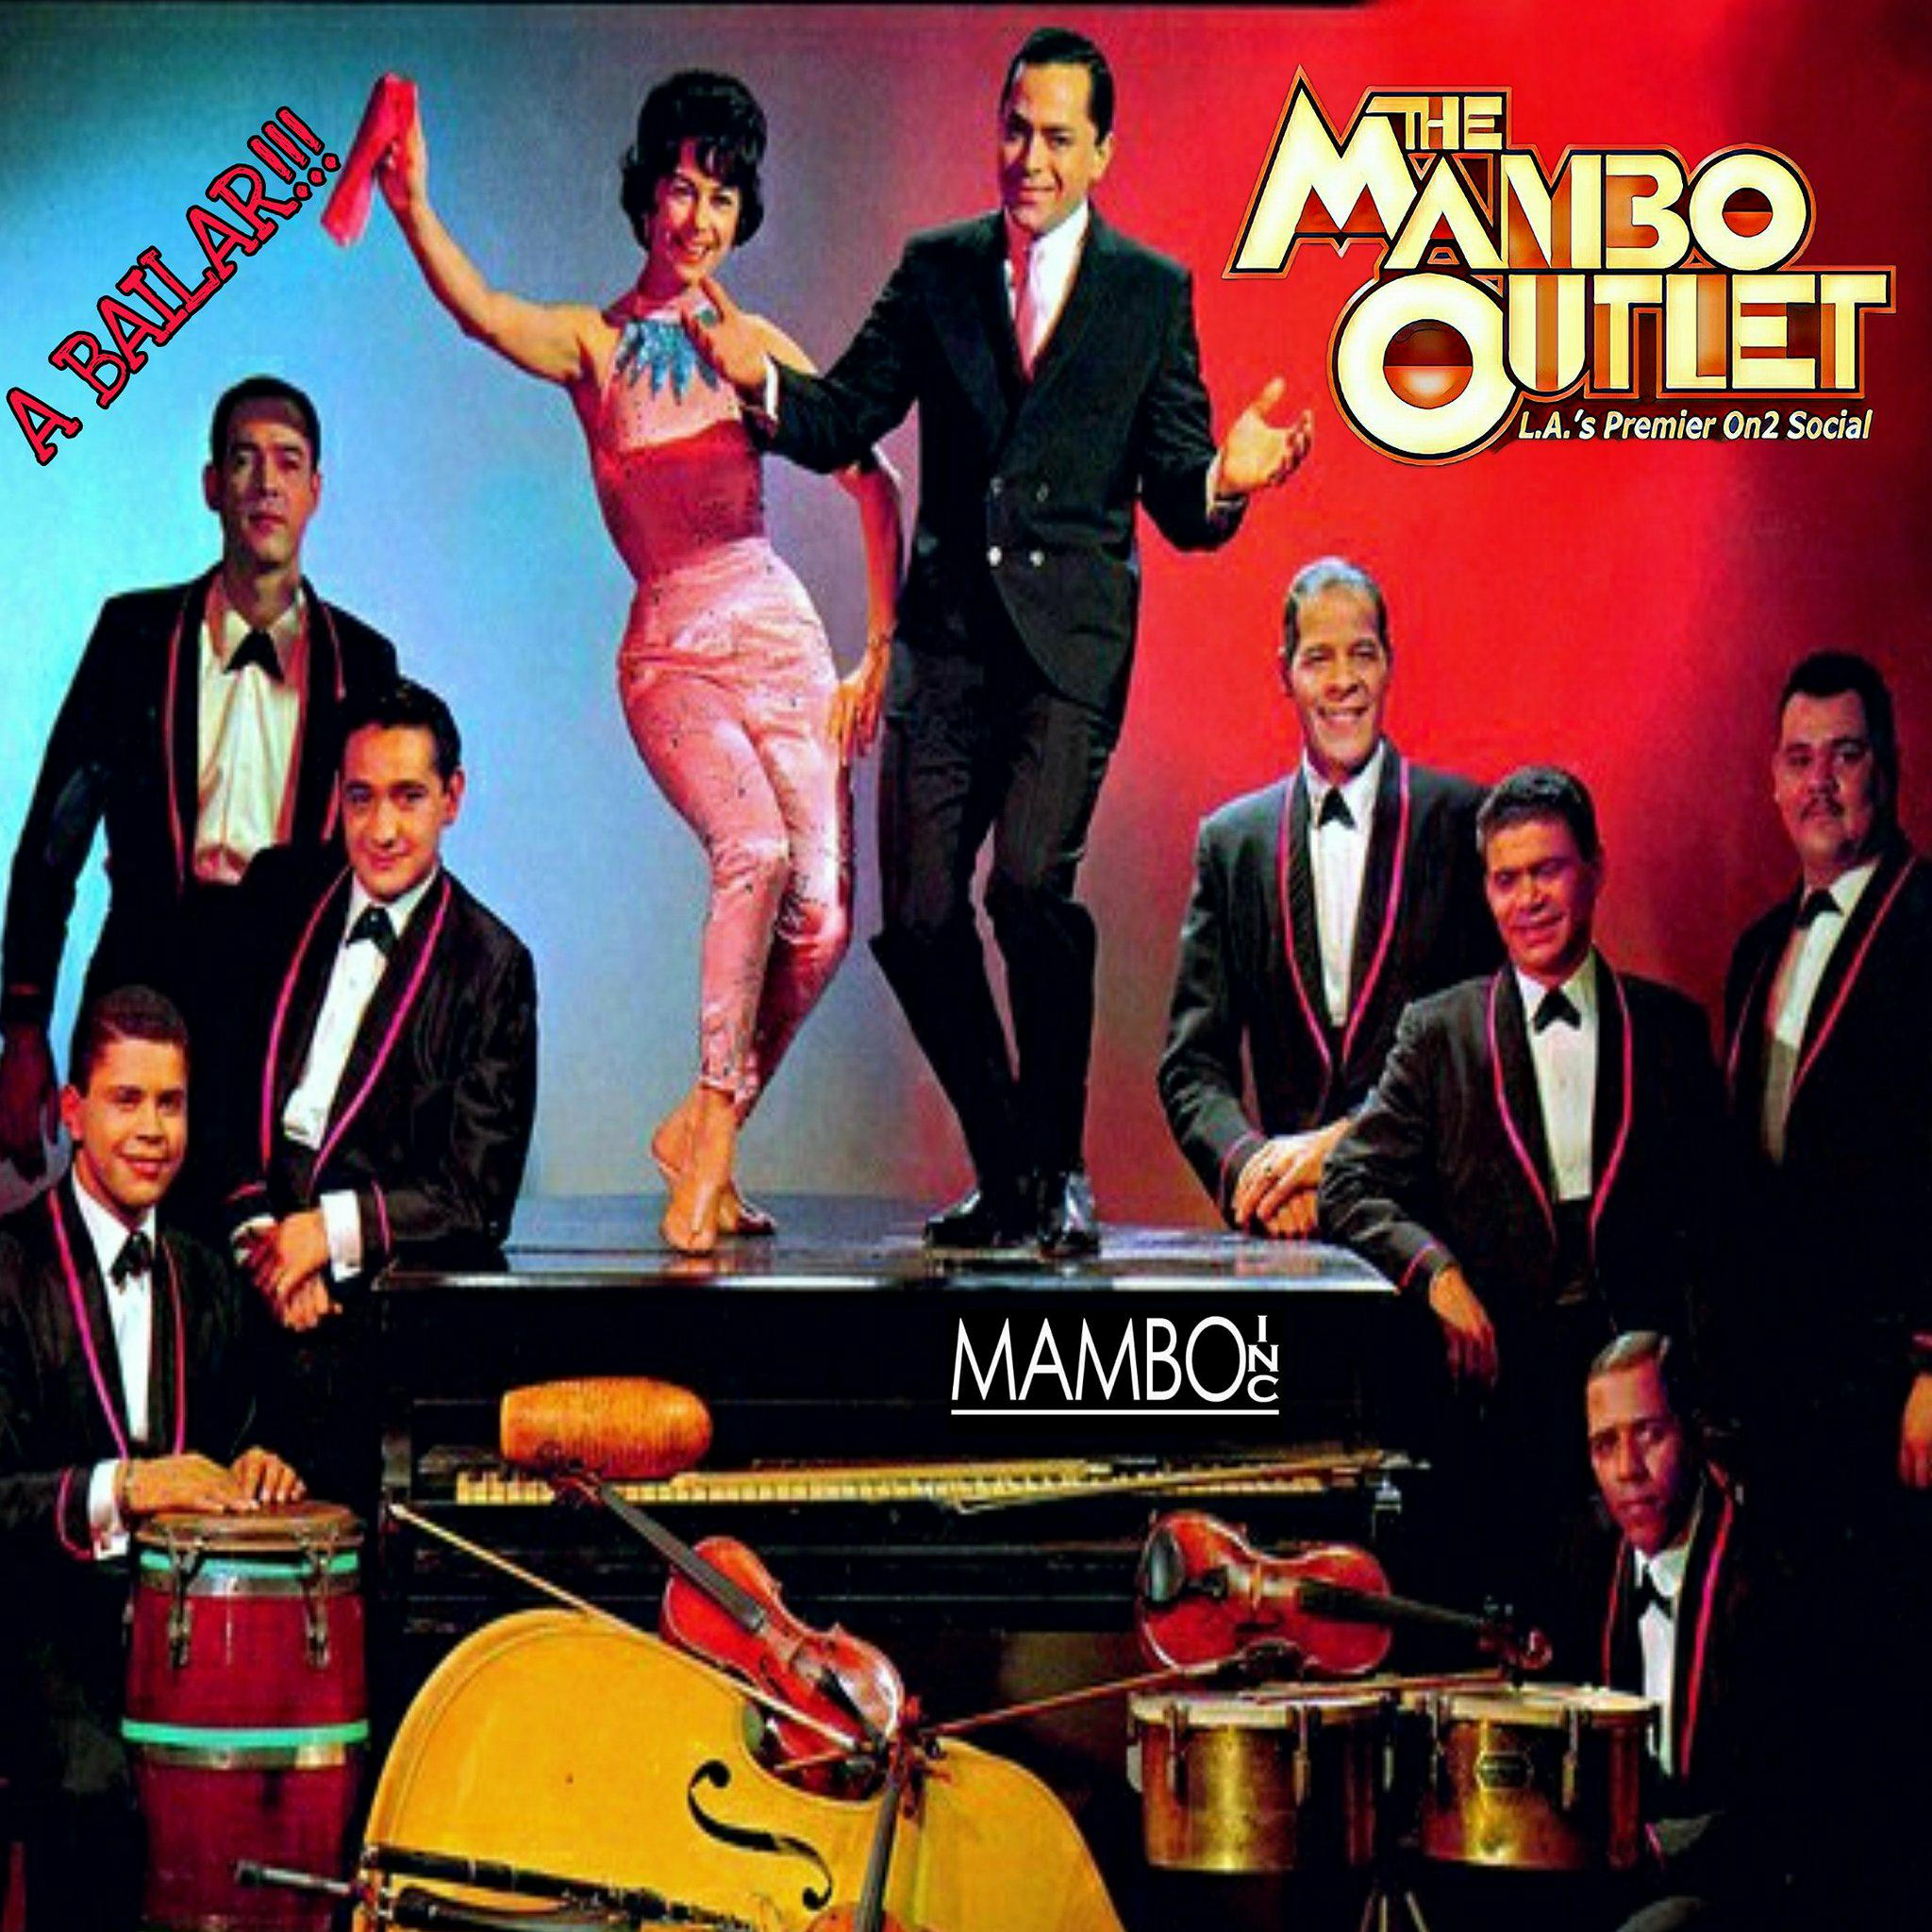 The Mambo Outlet – January 20, 2018